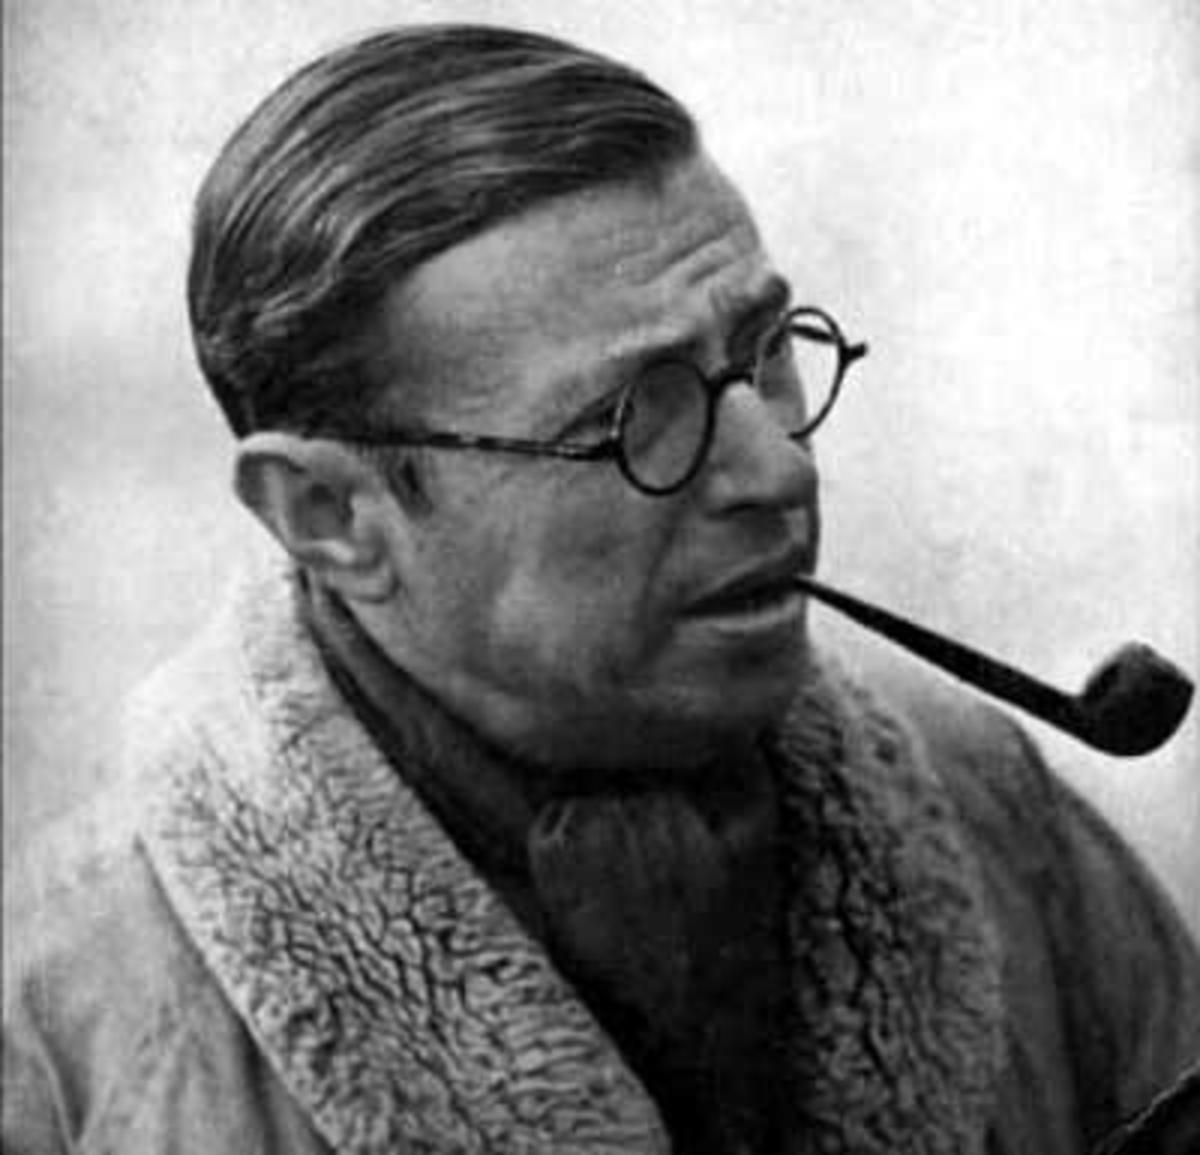 Jean-Paul Sartre wrote plays and was a social philosopher, who was well known for his existentialistic ideas.